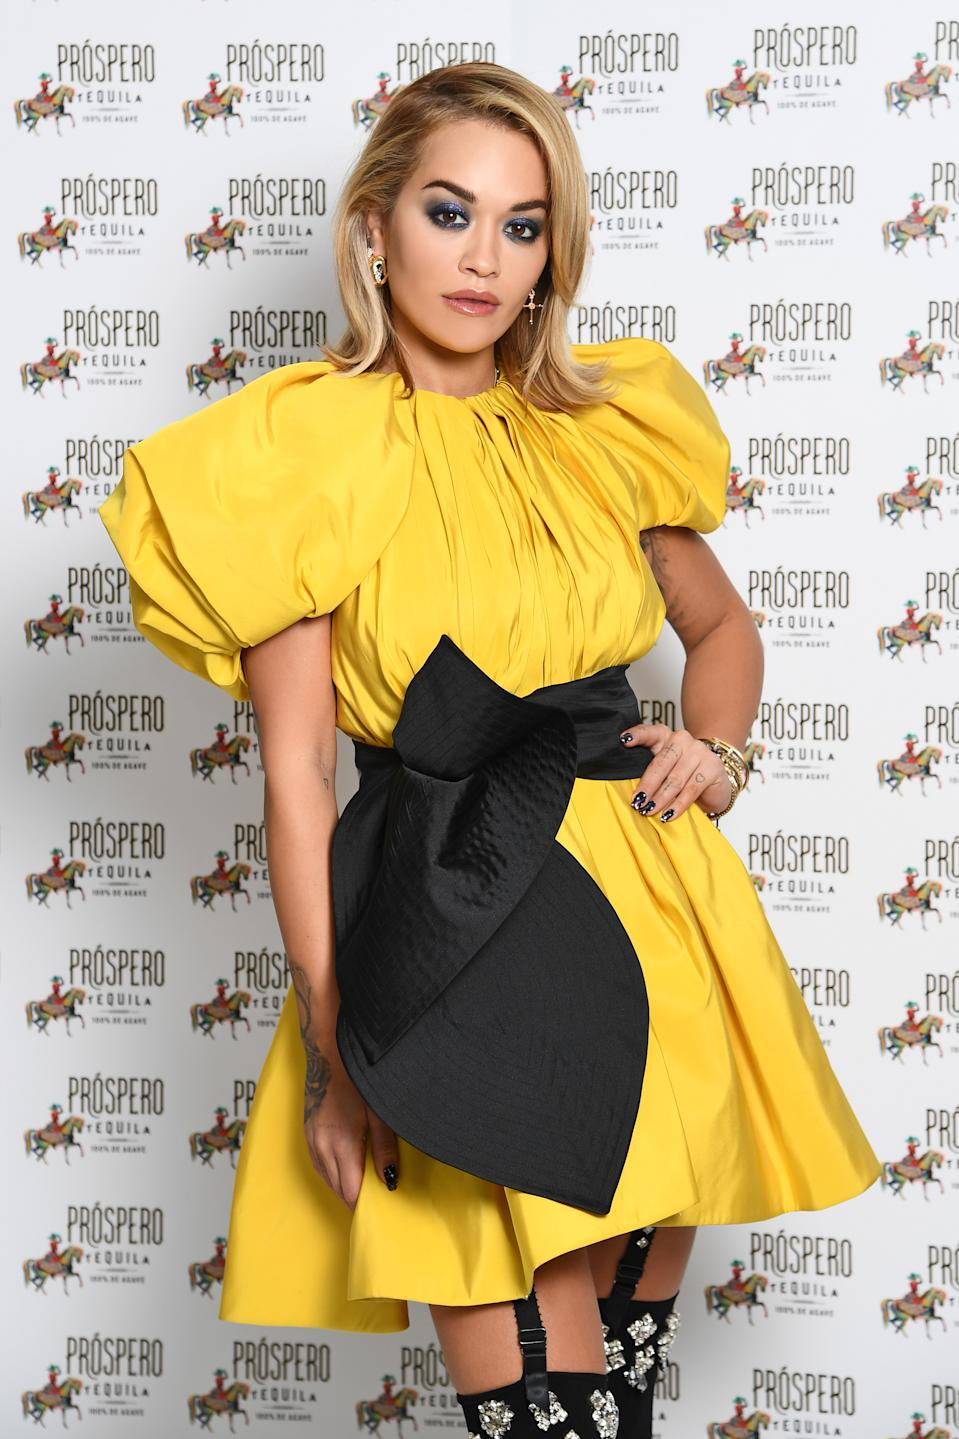 Rita Ora recently found herself in trouble for breaking lockdown (Photo by Gareth Cattermole/Getty Images for ABA)